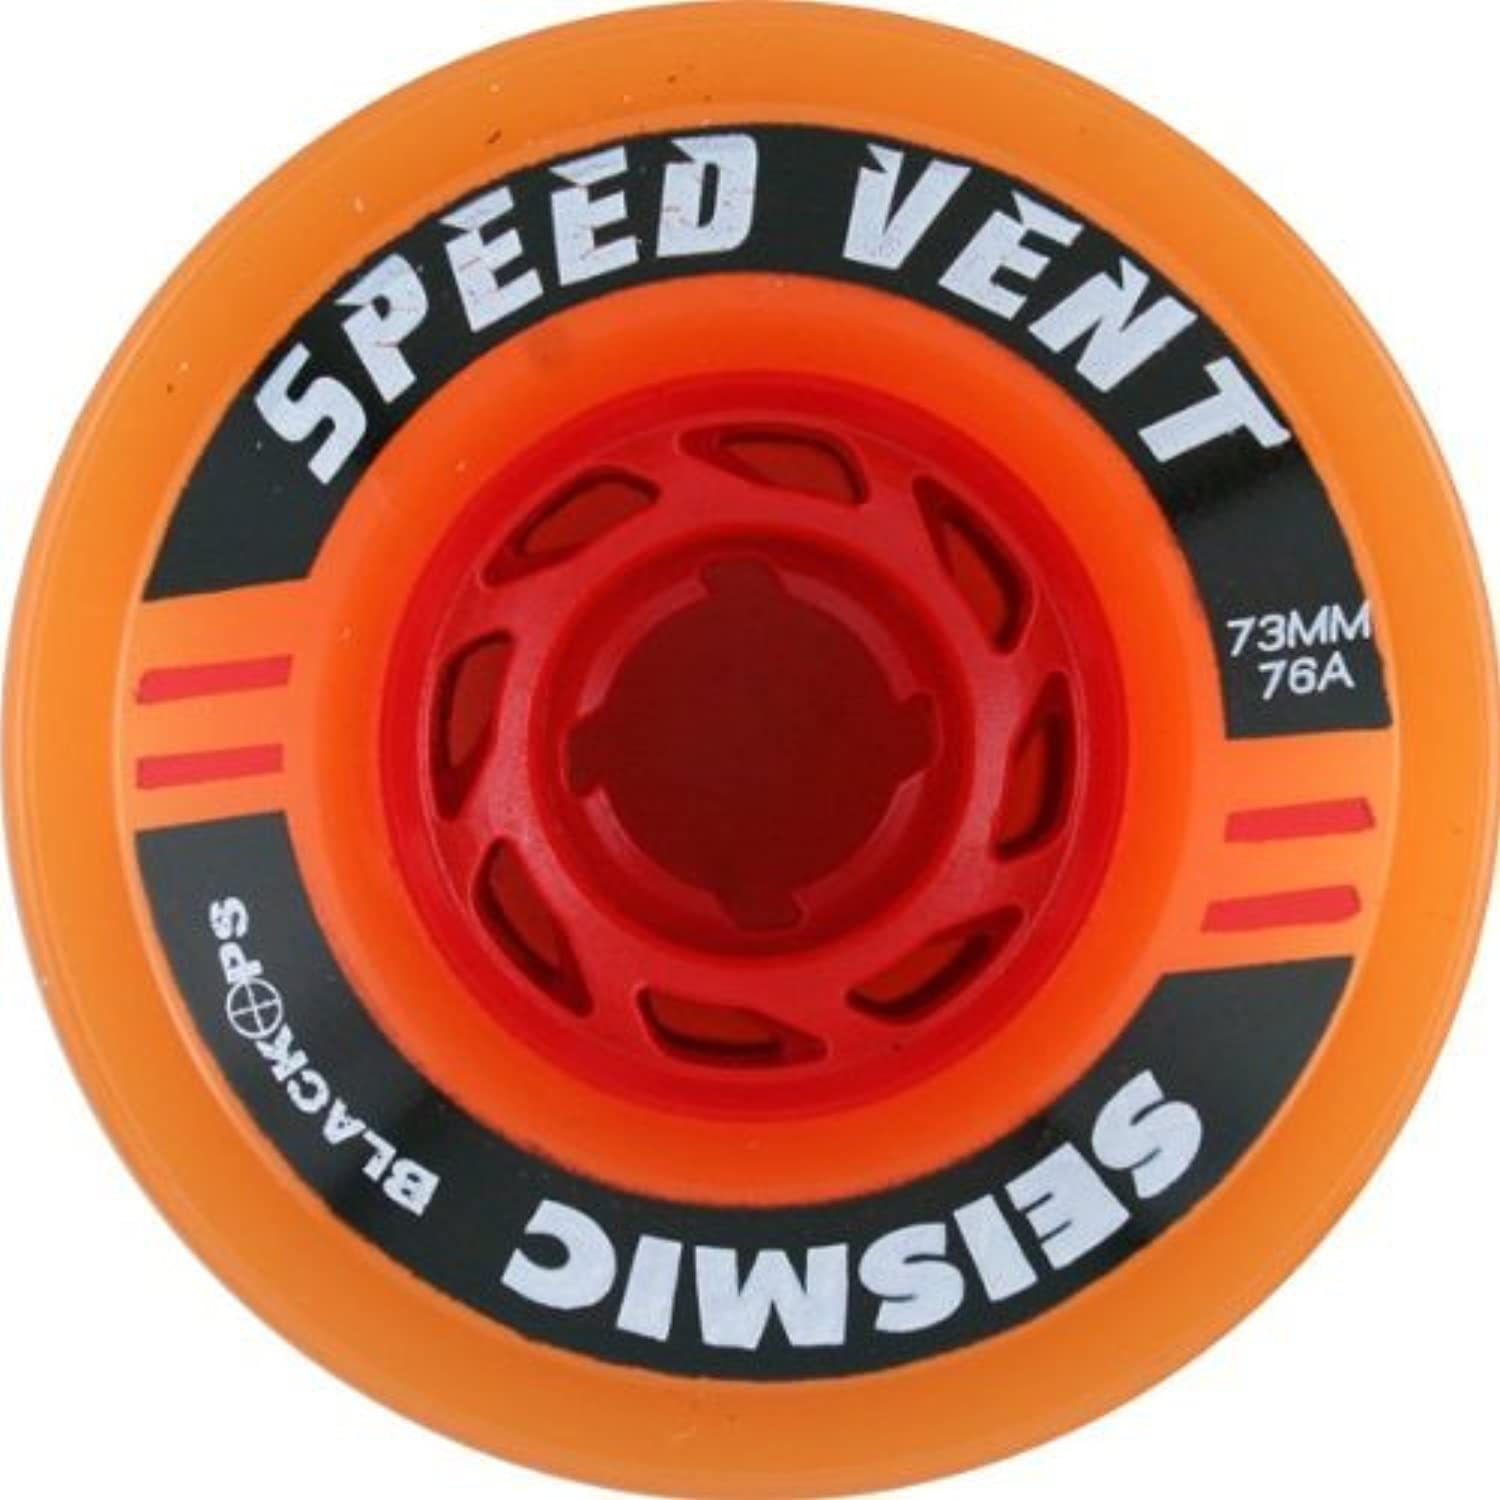 Seismic Speed Vent 73mm 76a Trans orange Red Wheels (Set Of 4) by Seismic